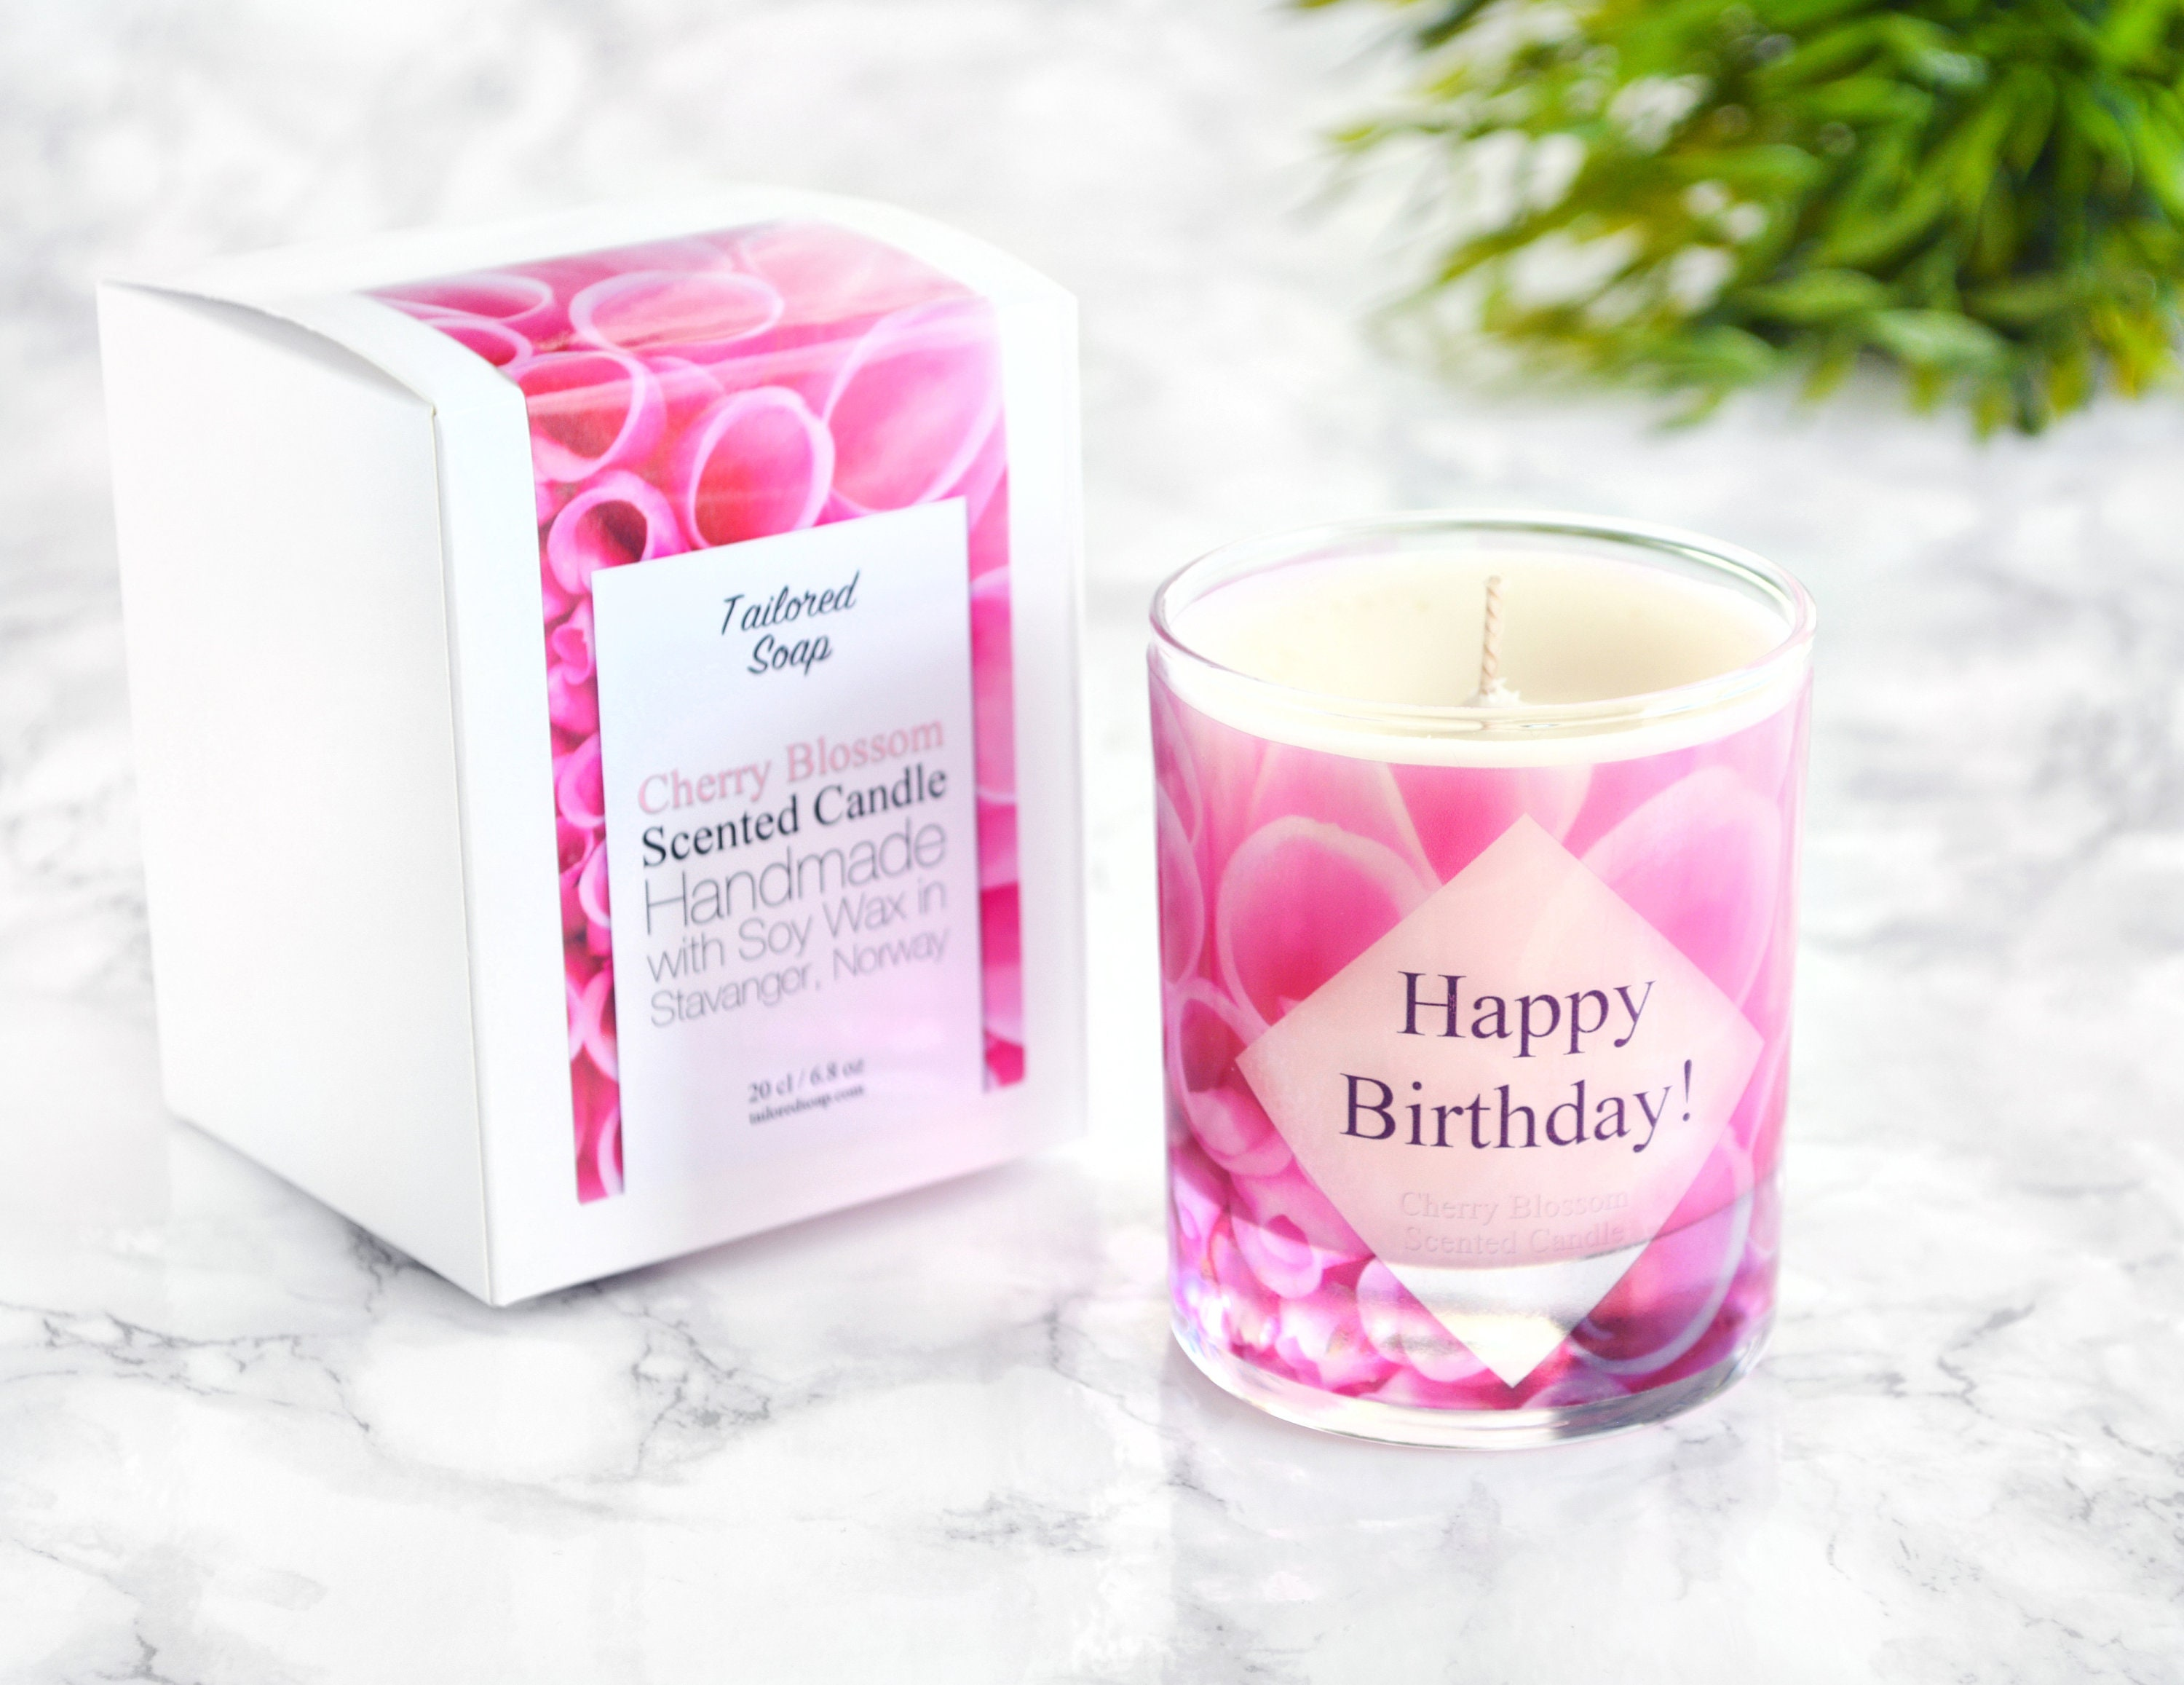 Happy Birthday Candle Gift Box For Her Cherry Blossom Candle Etsy